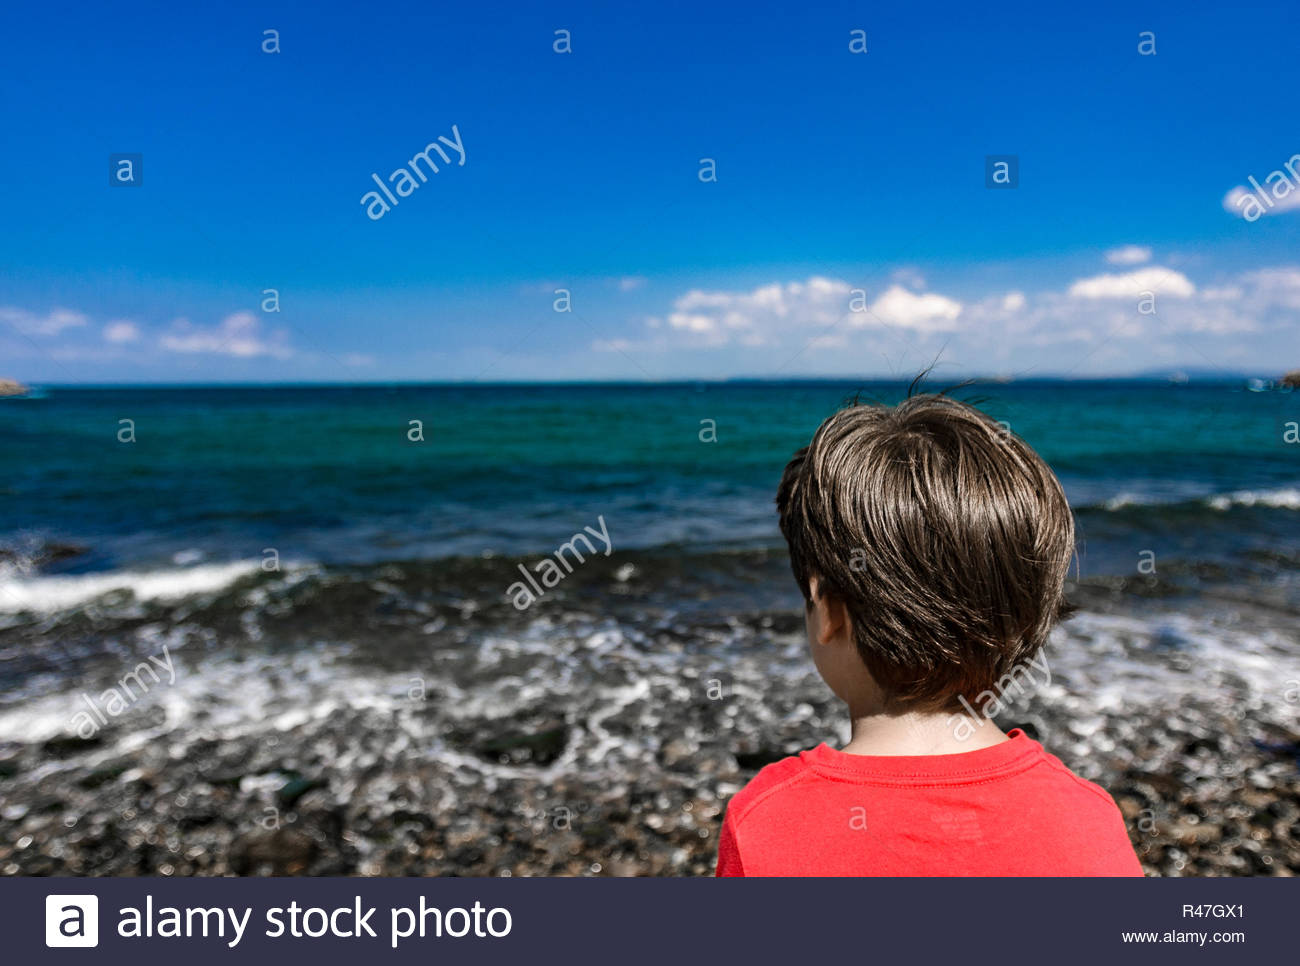 Bozcaada Summer 2015 photos by Hulki Okan Tabak. Lonely boy looking out, beach, blue sea, clear sky and waves. - Stock Image